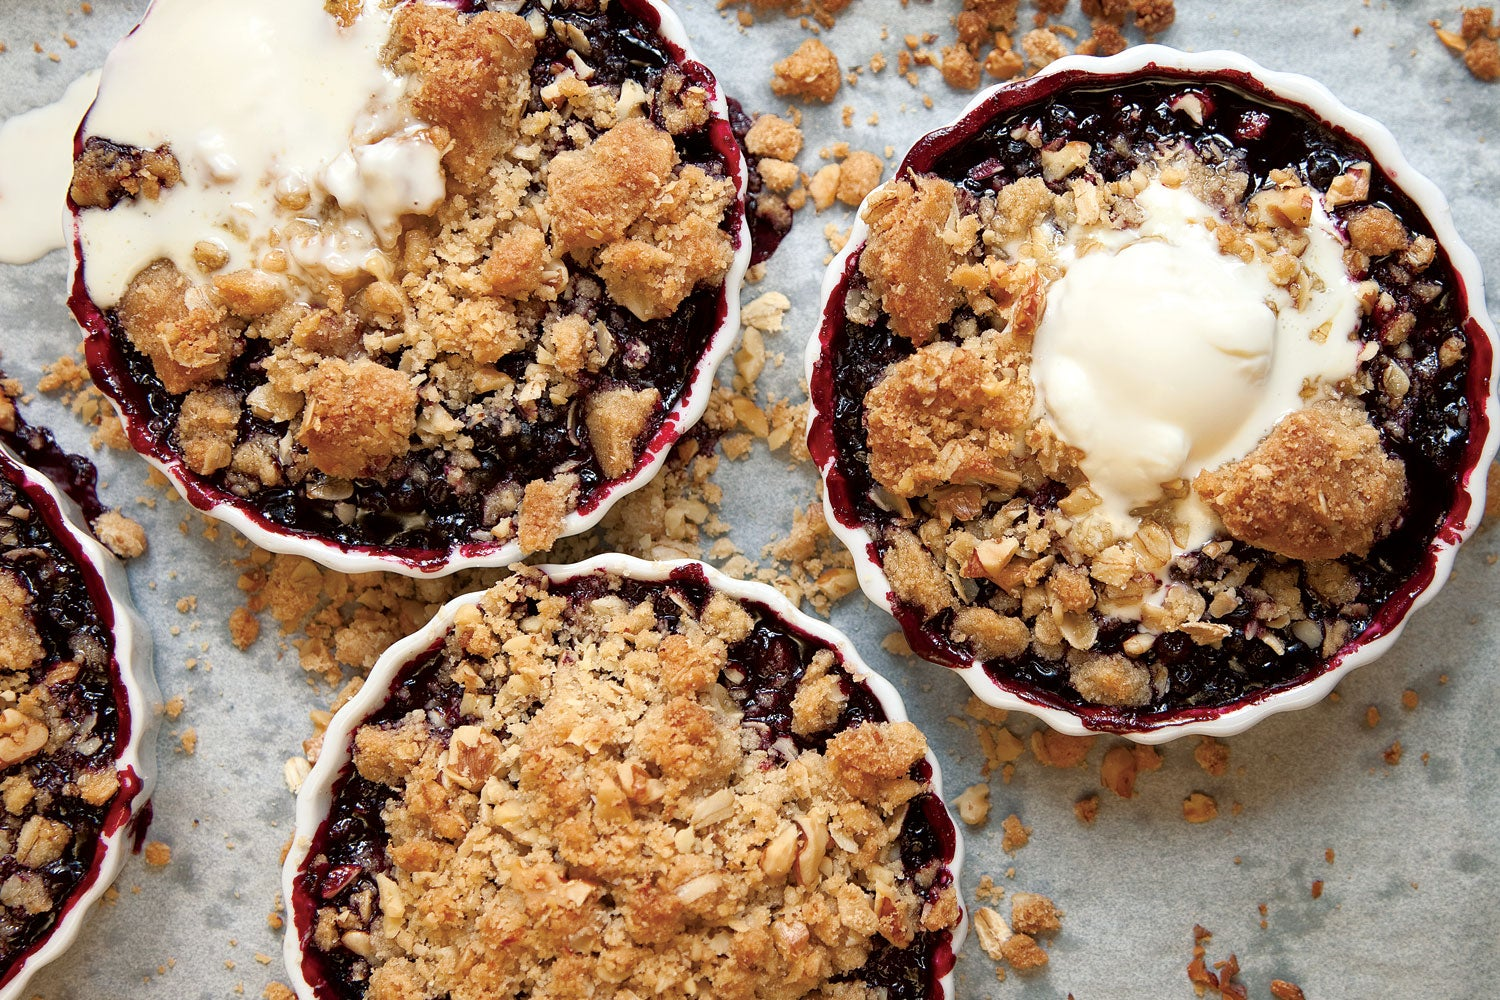 Fruity Cobblers, Crisps, and Crumbles